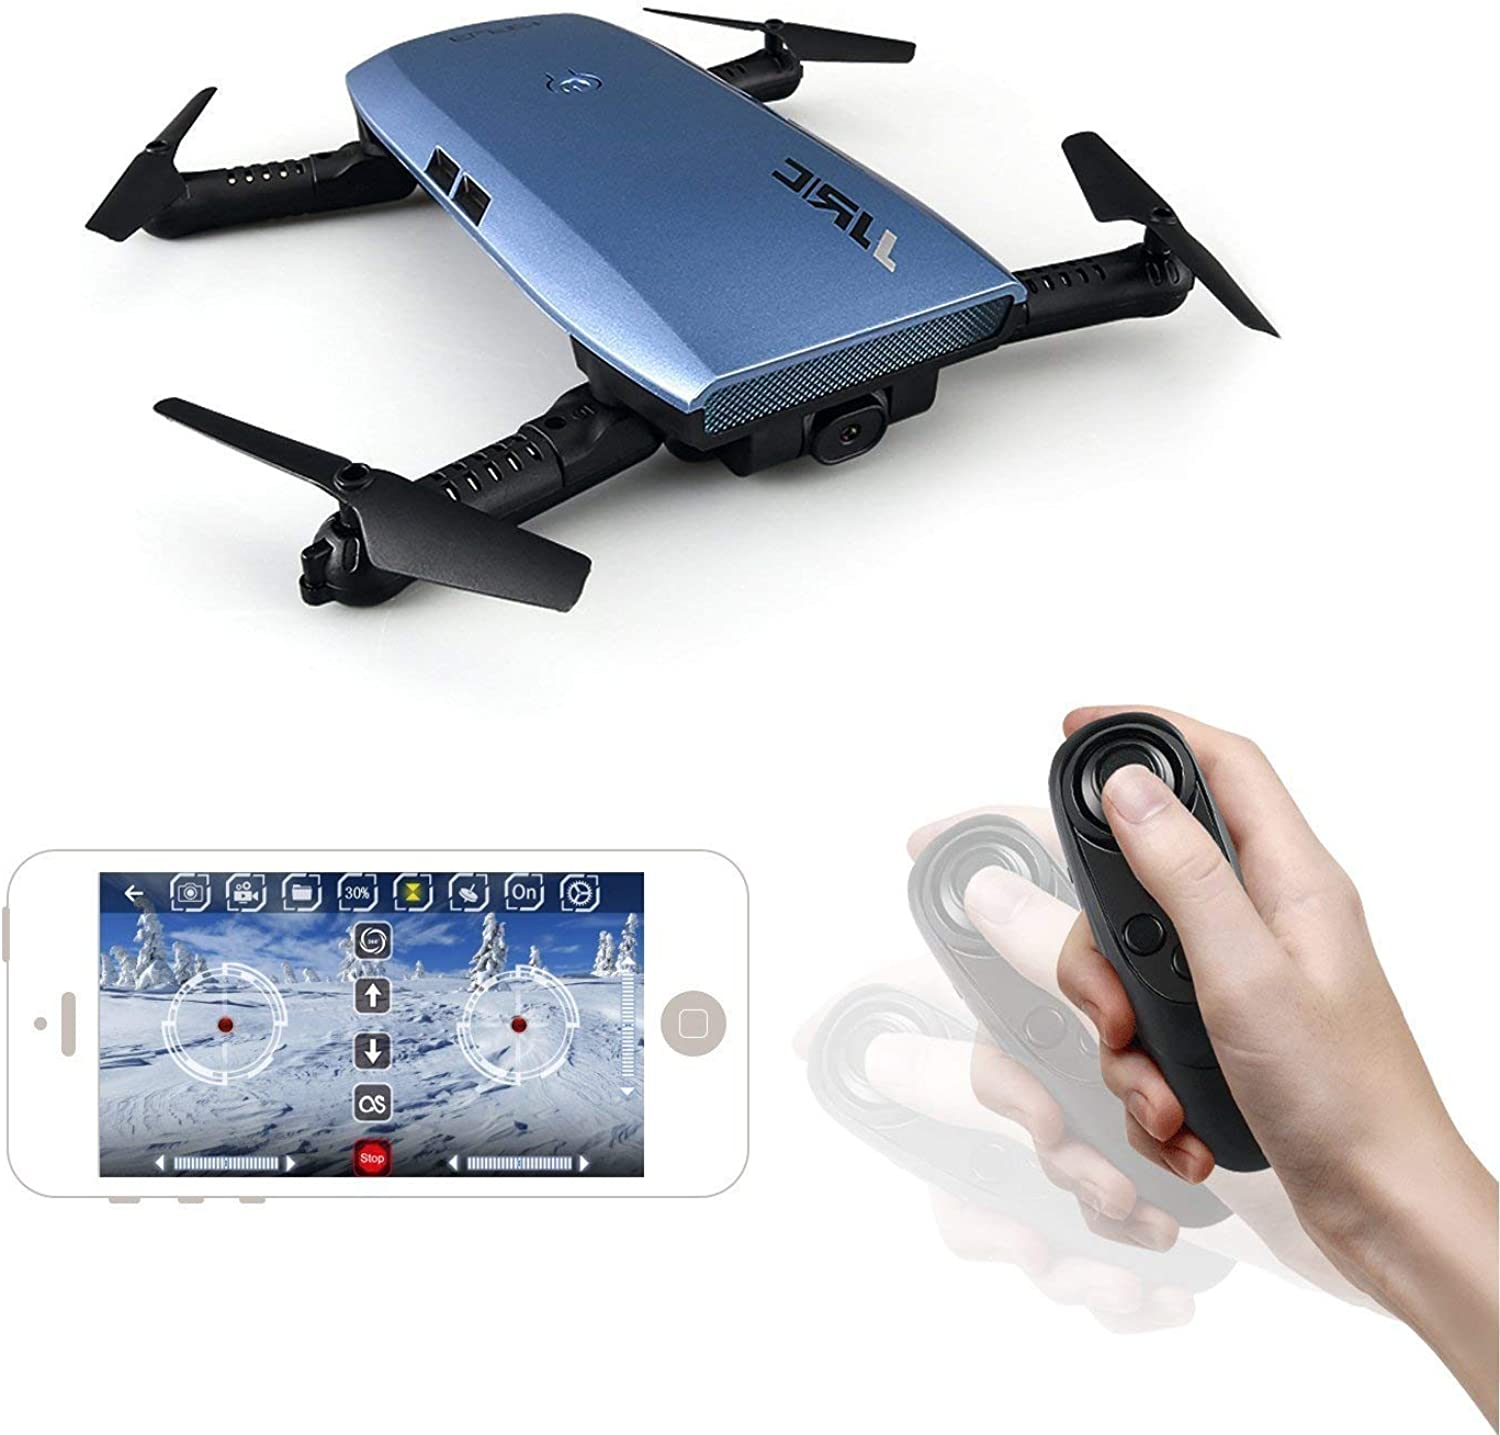 JSMeet JJR C H47 RC Drone with 720 HD Camera Elfie Foldable Selfie Helicopter Gravity Sensor Mode One Hand Remote Control Mini Quadcopter (bluee)